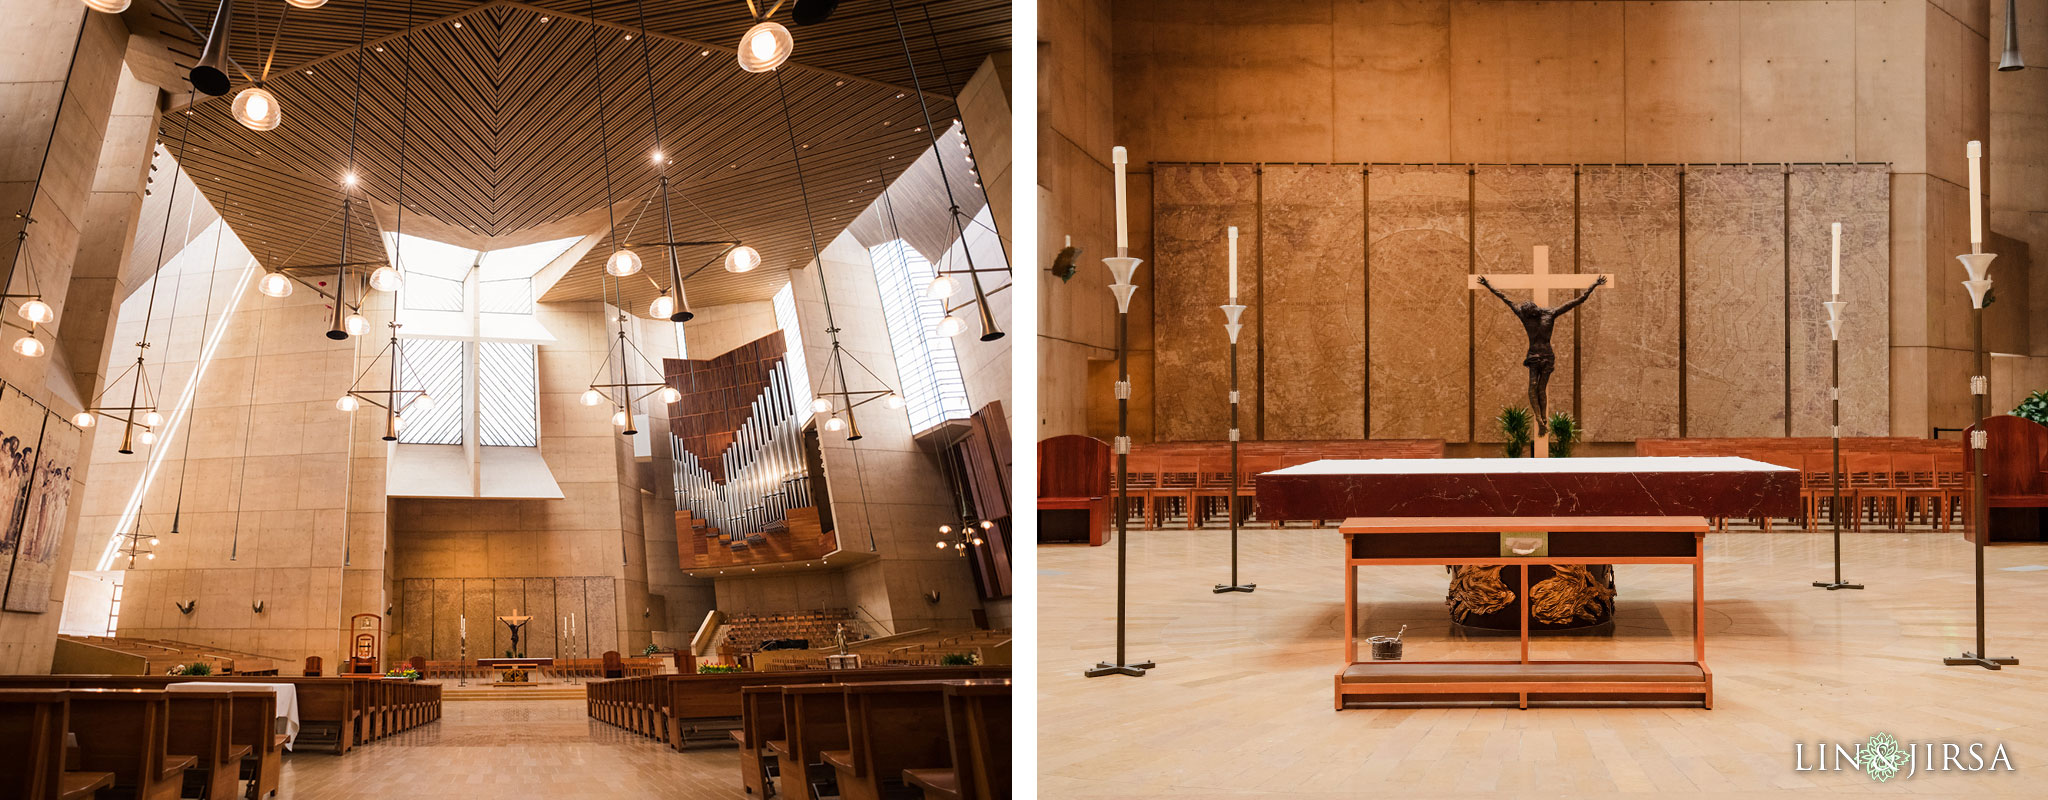 020 cathedral of our lady of angels los angeles wedding ceremony photography